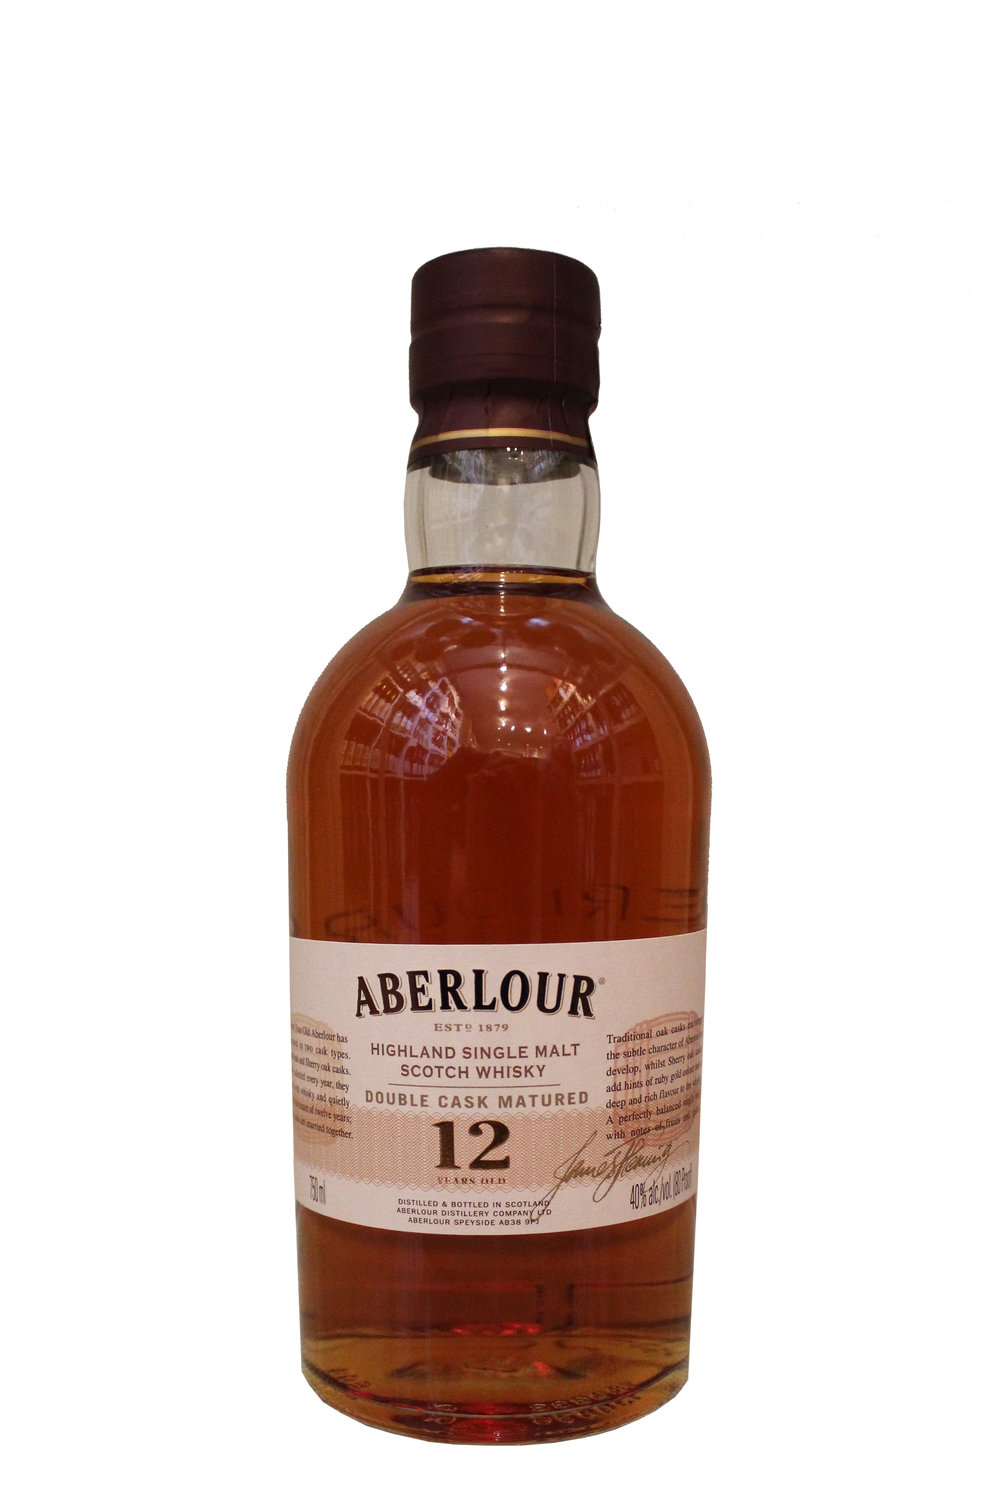 Double Cask-Aged Scotch Whiskey  Aberlour,  Scotland